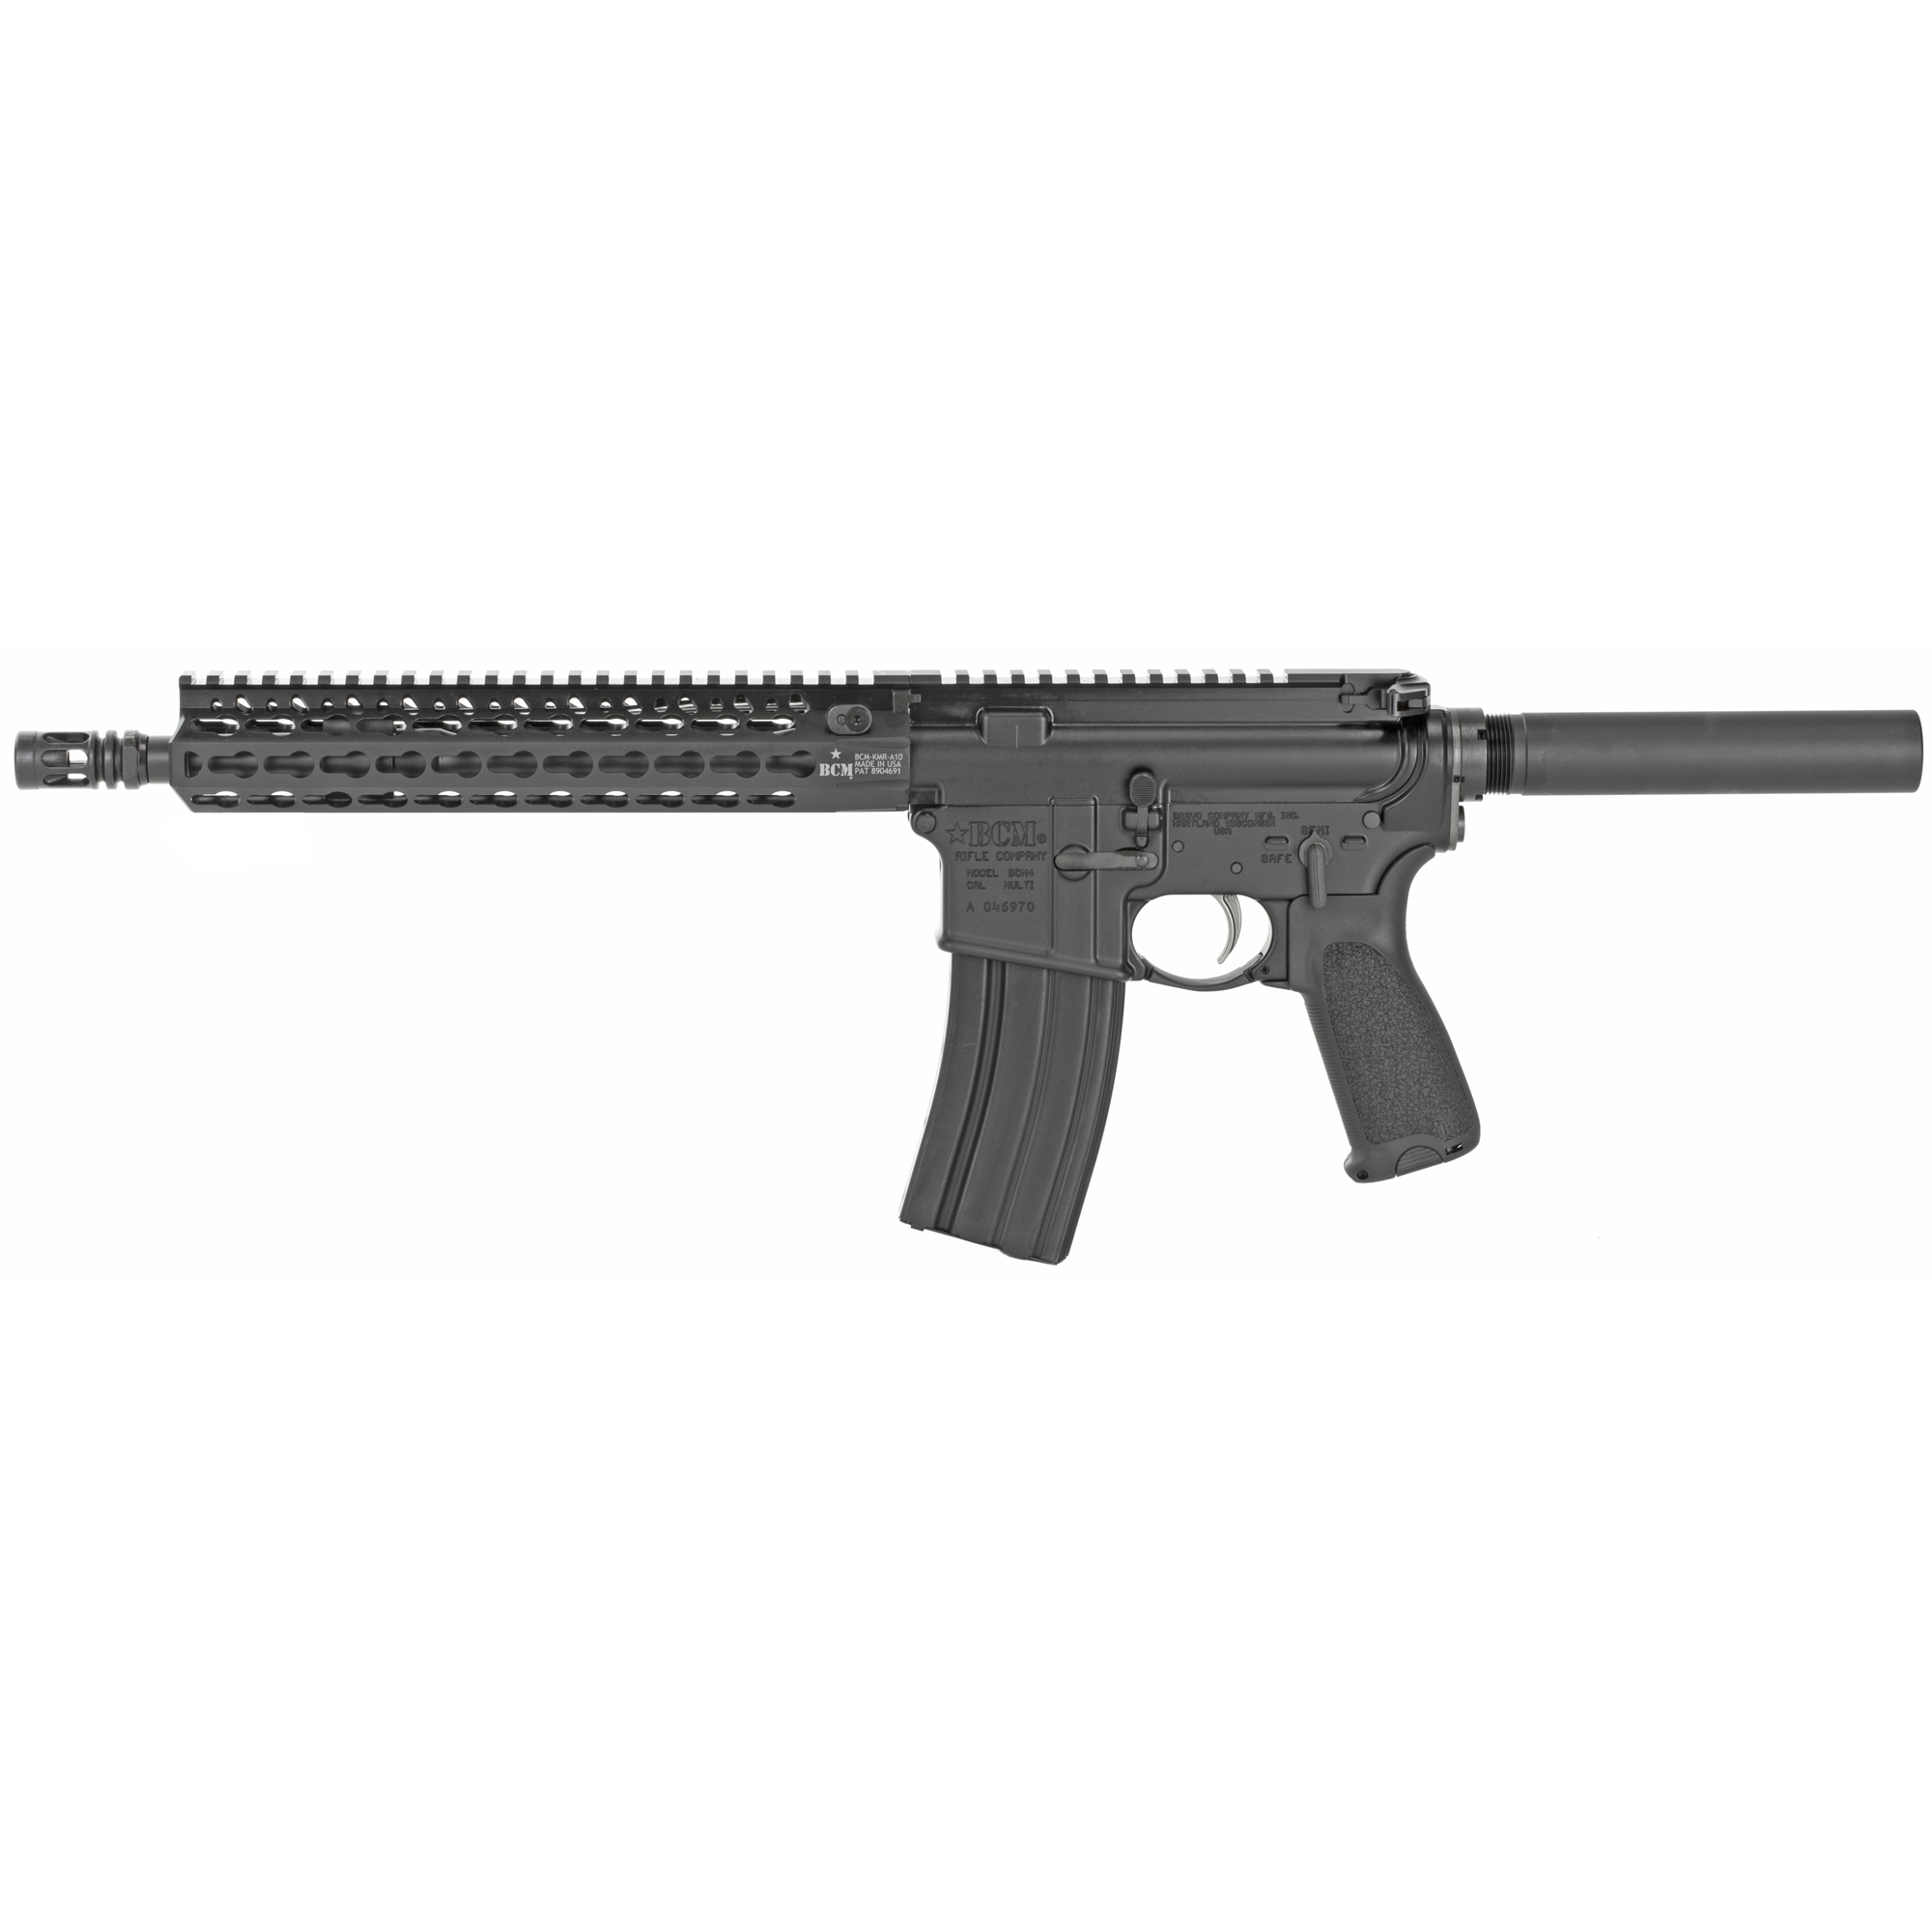 "Bcm Recce-11 Kmr-a 11.5"" 5.56mm 30rd"